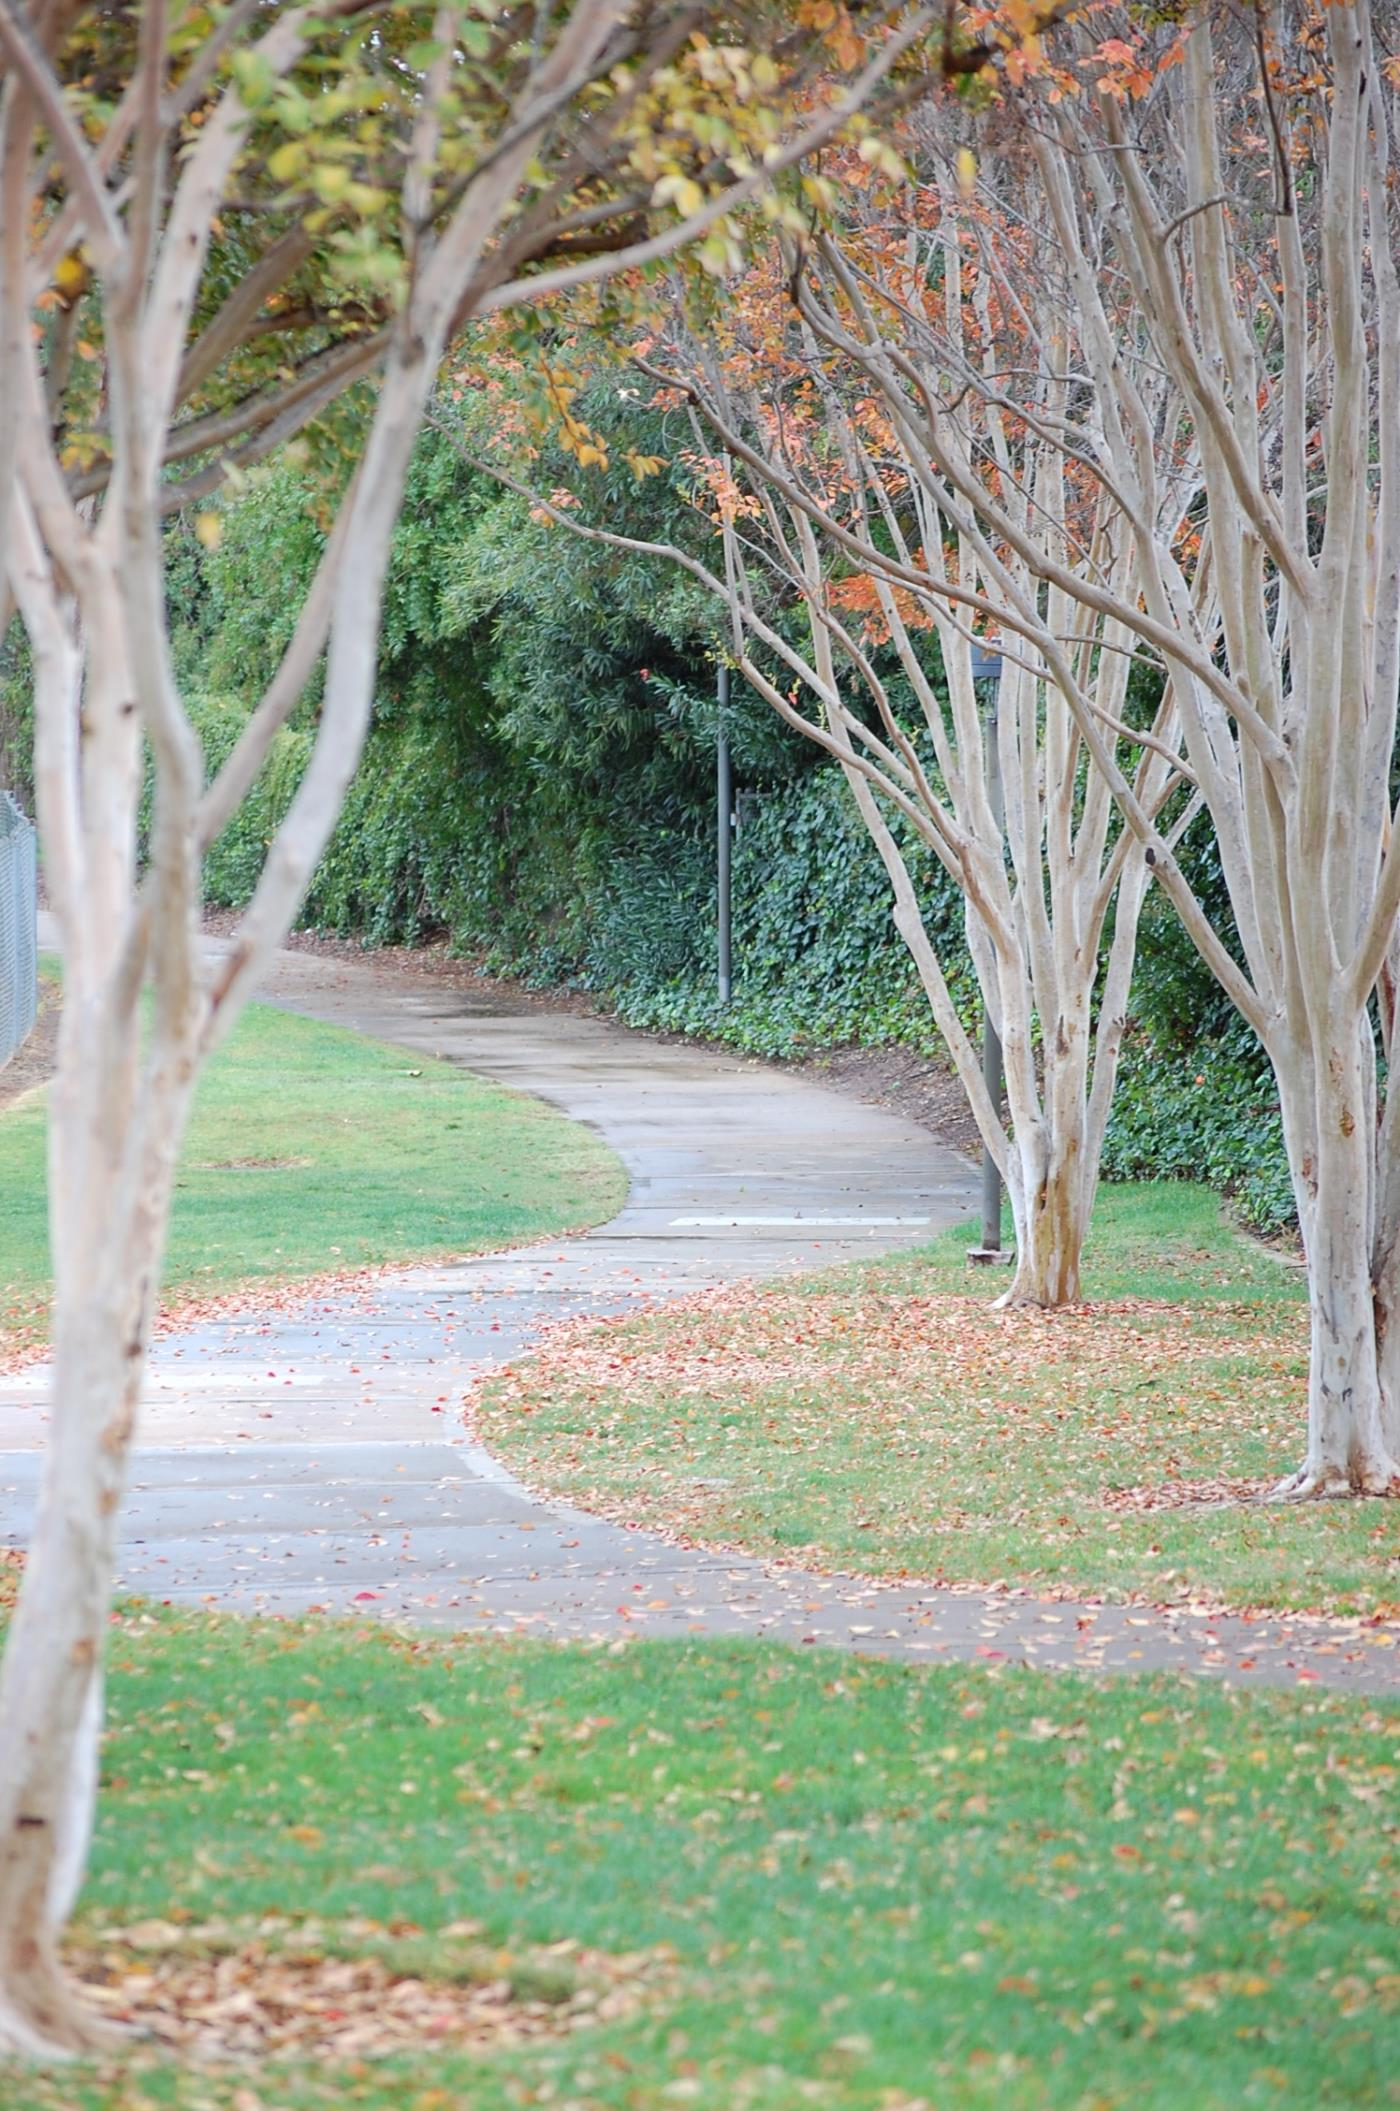 park trees, walking path, fall leaves